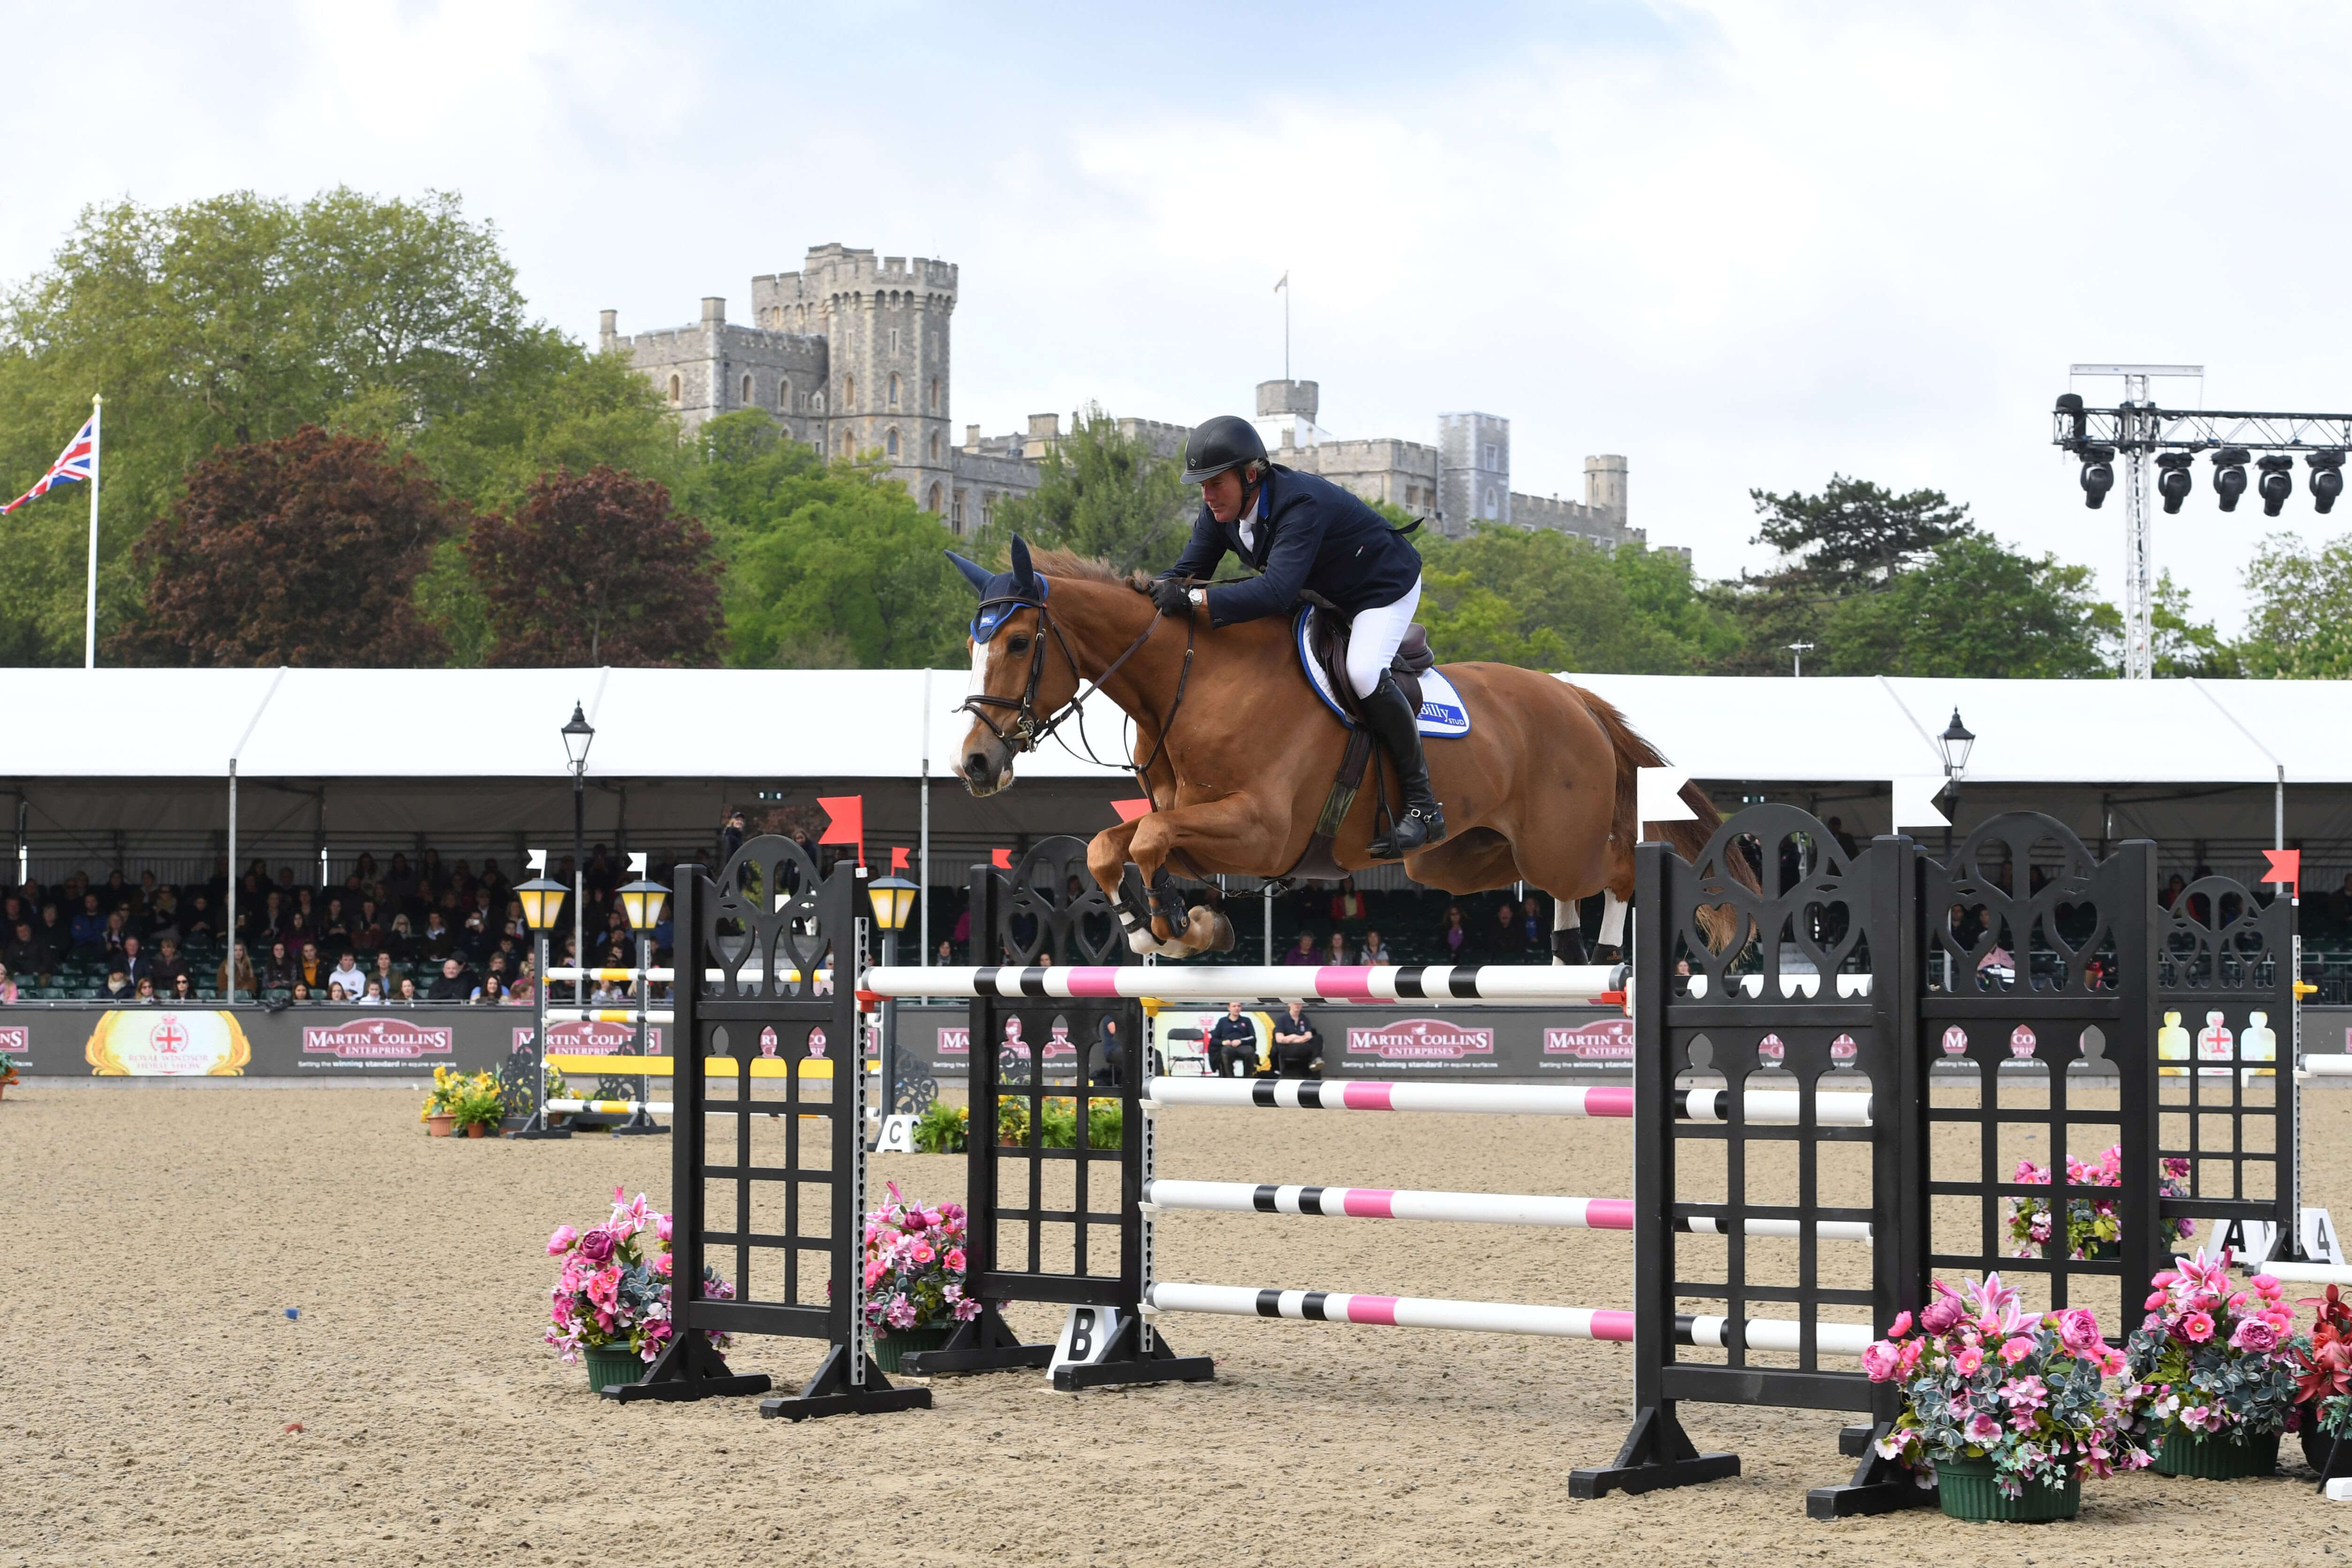 Royal Windsor Horse Show Postponed to Later Date this Year